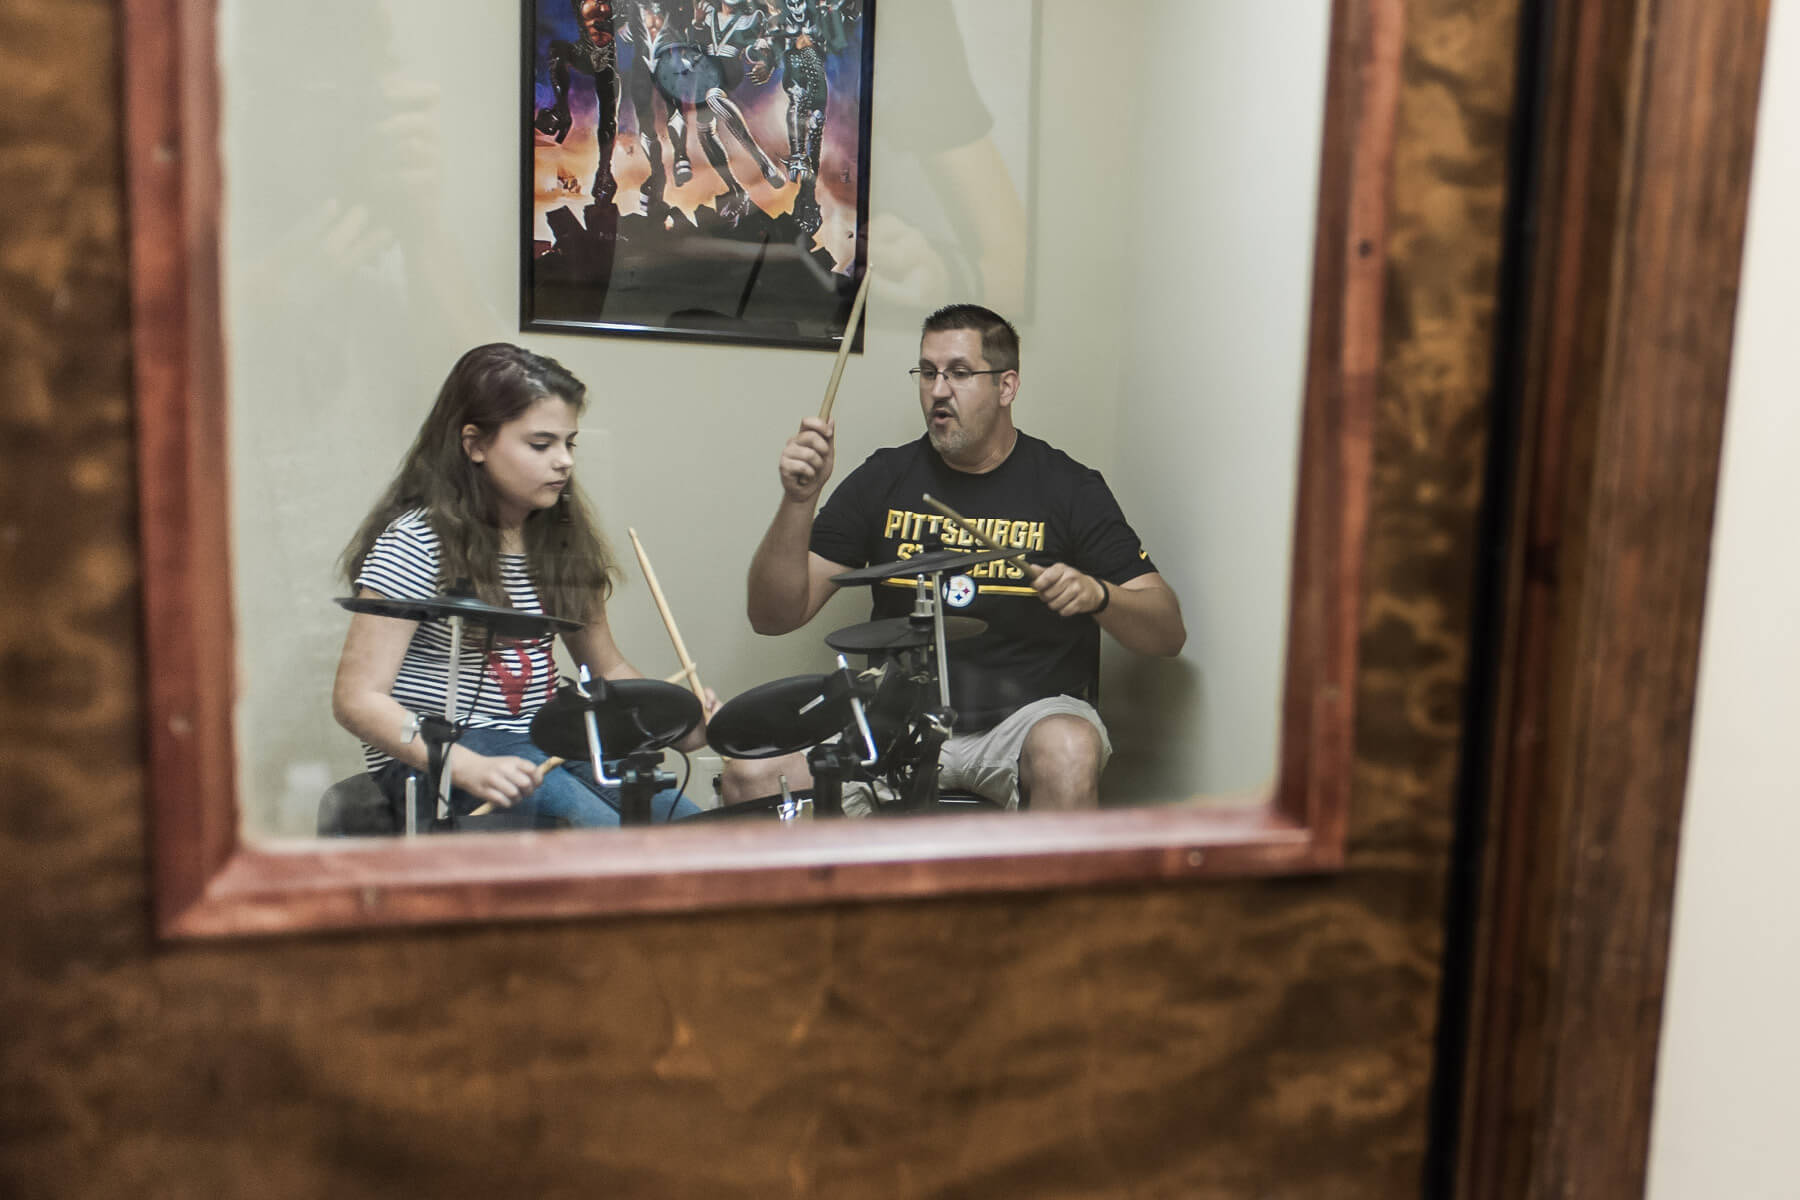 Instructor and student - drum lesson in progress.